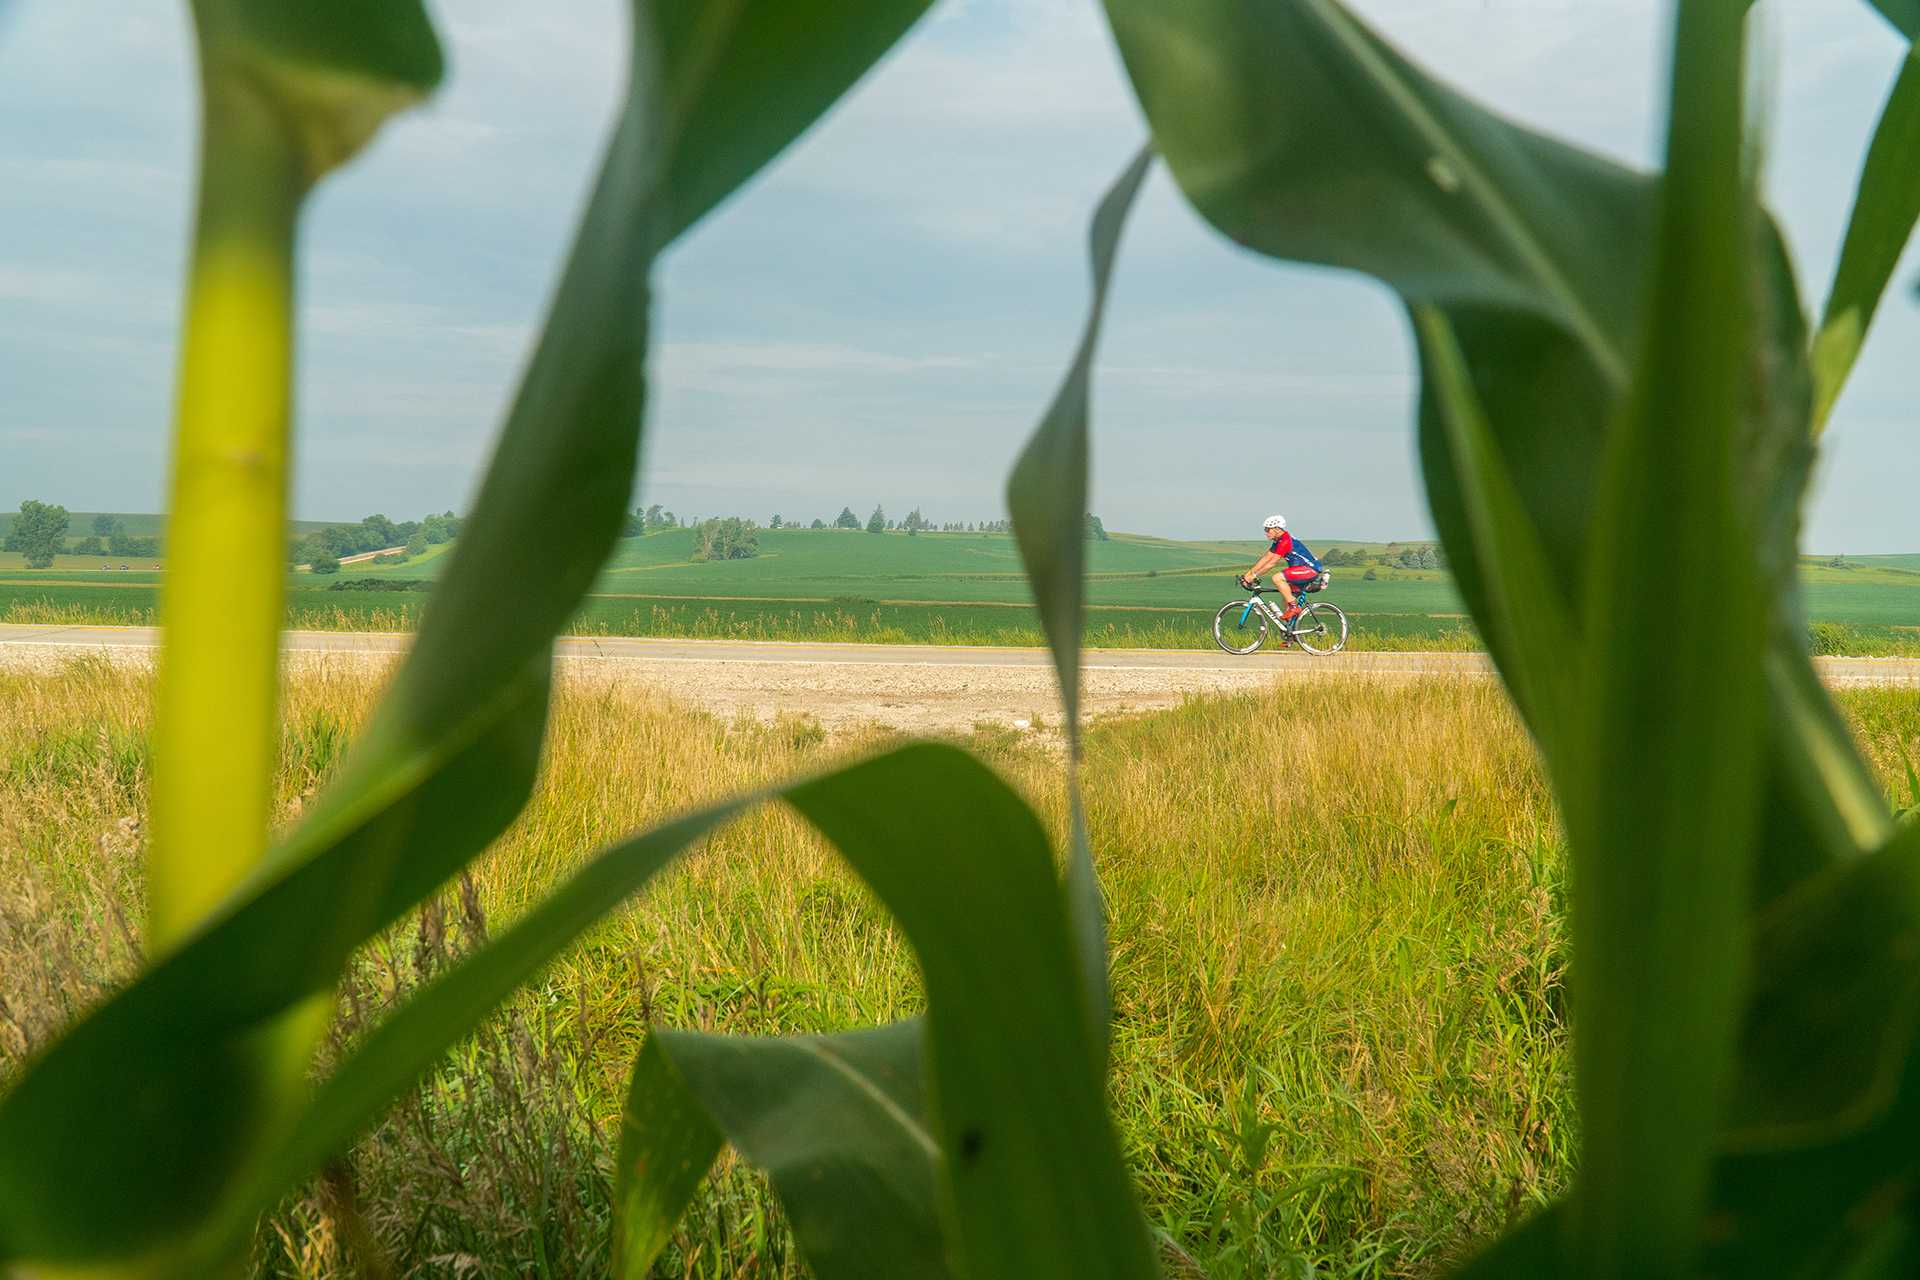 A biker pedals through rural cornfields close to the outskirts of Aspinwall, Iowa.